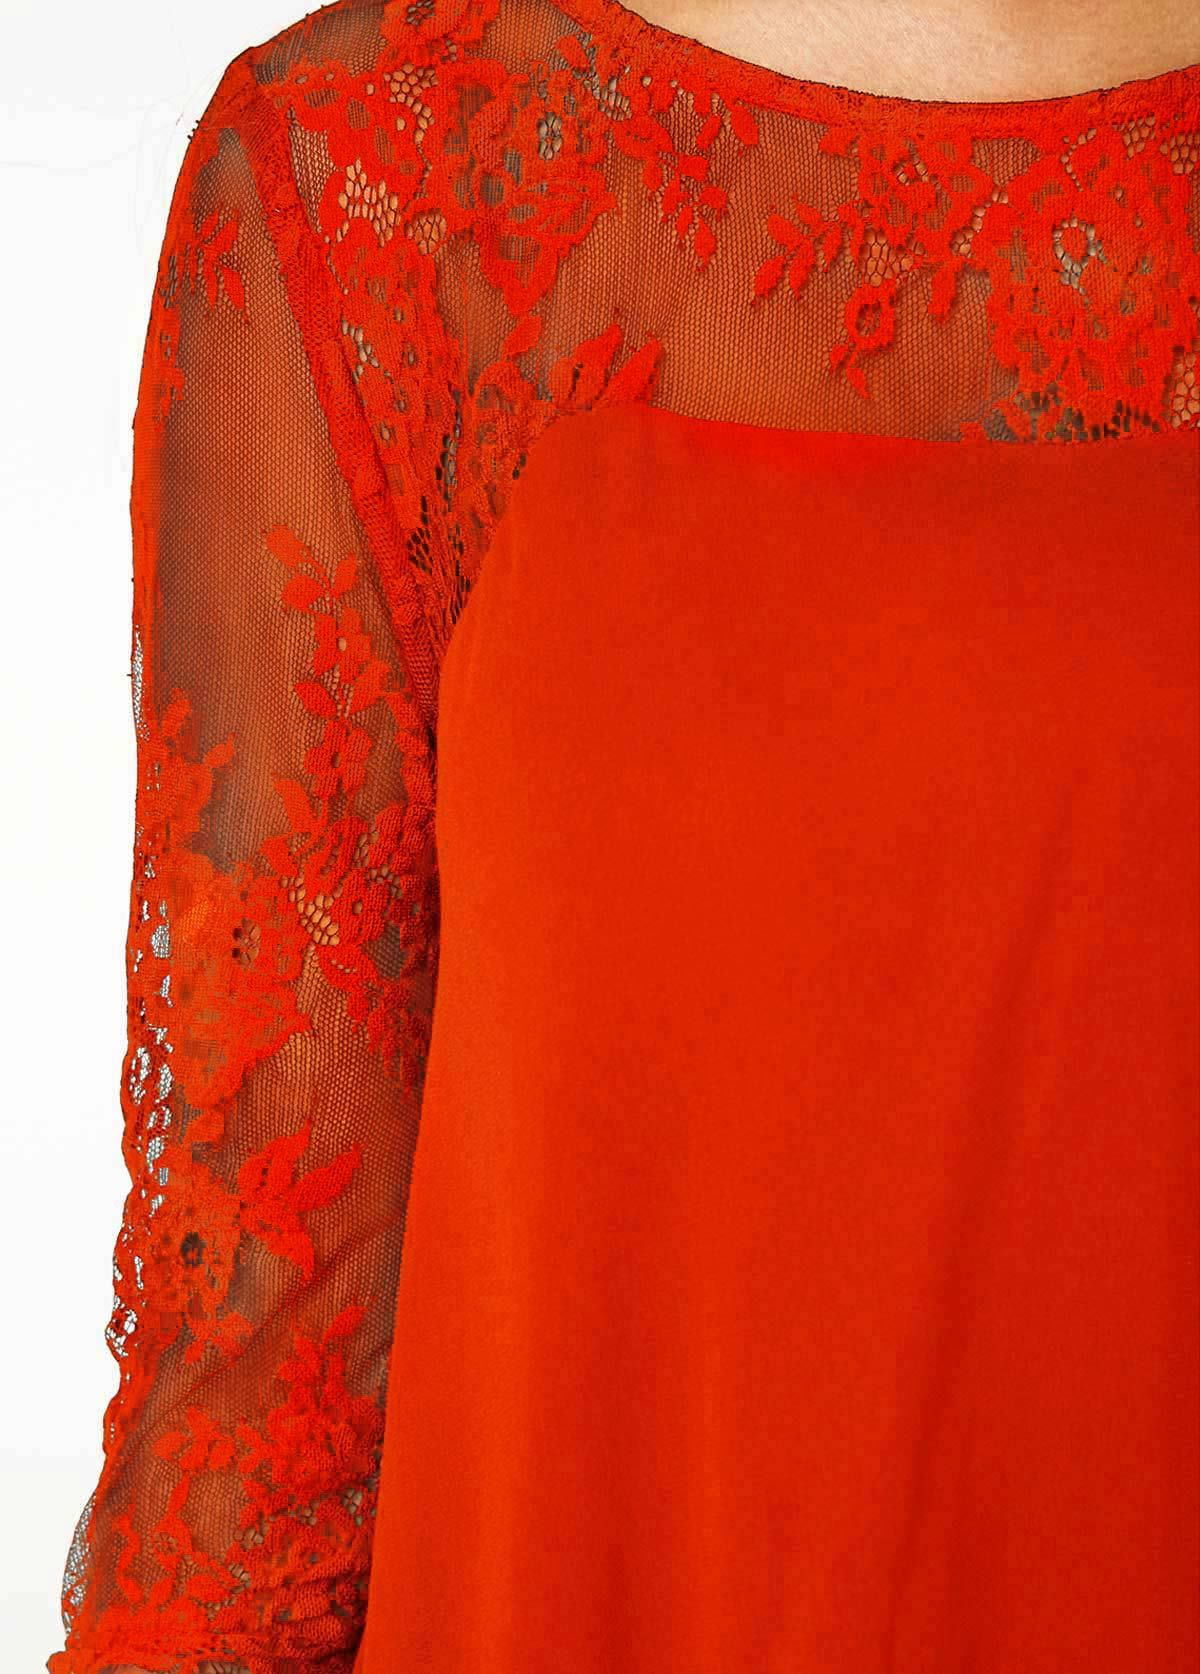 ac63d8a443d Orange Chiffon Overlay Three Quarter Sleeve Lace Dress  Overlay ...